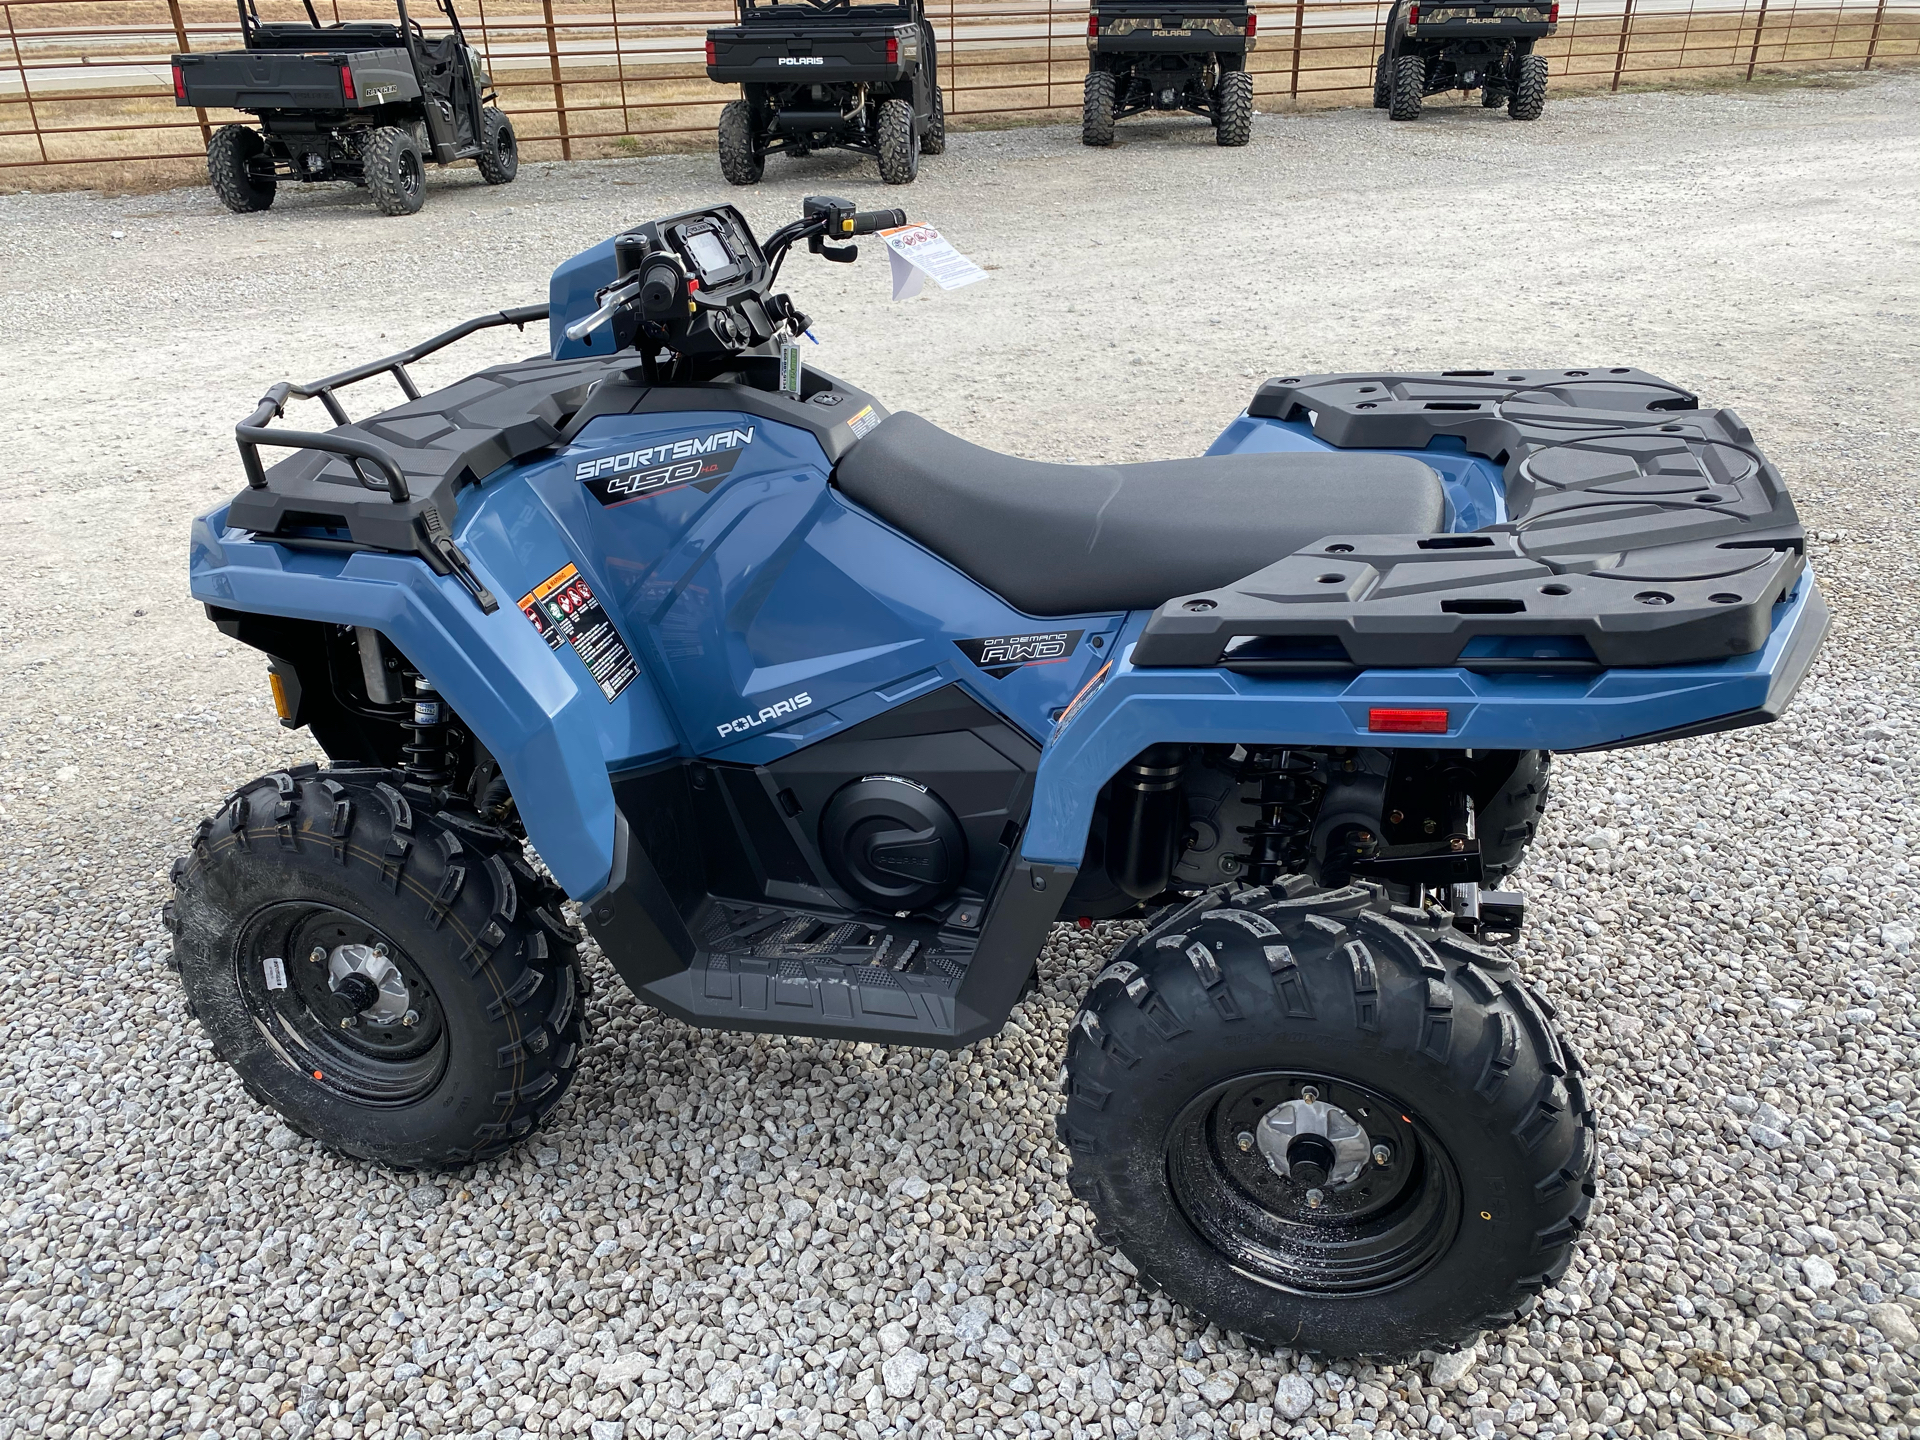 2021 Polaris Sportsman 450 H.O. in Bolivar, Missouri - Photo 7